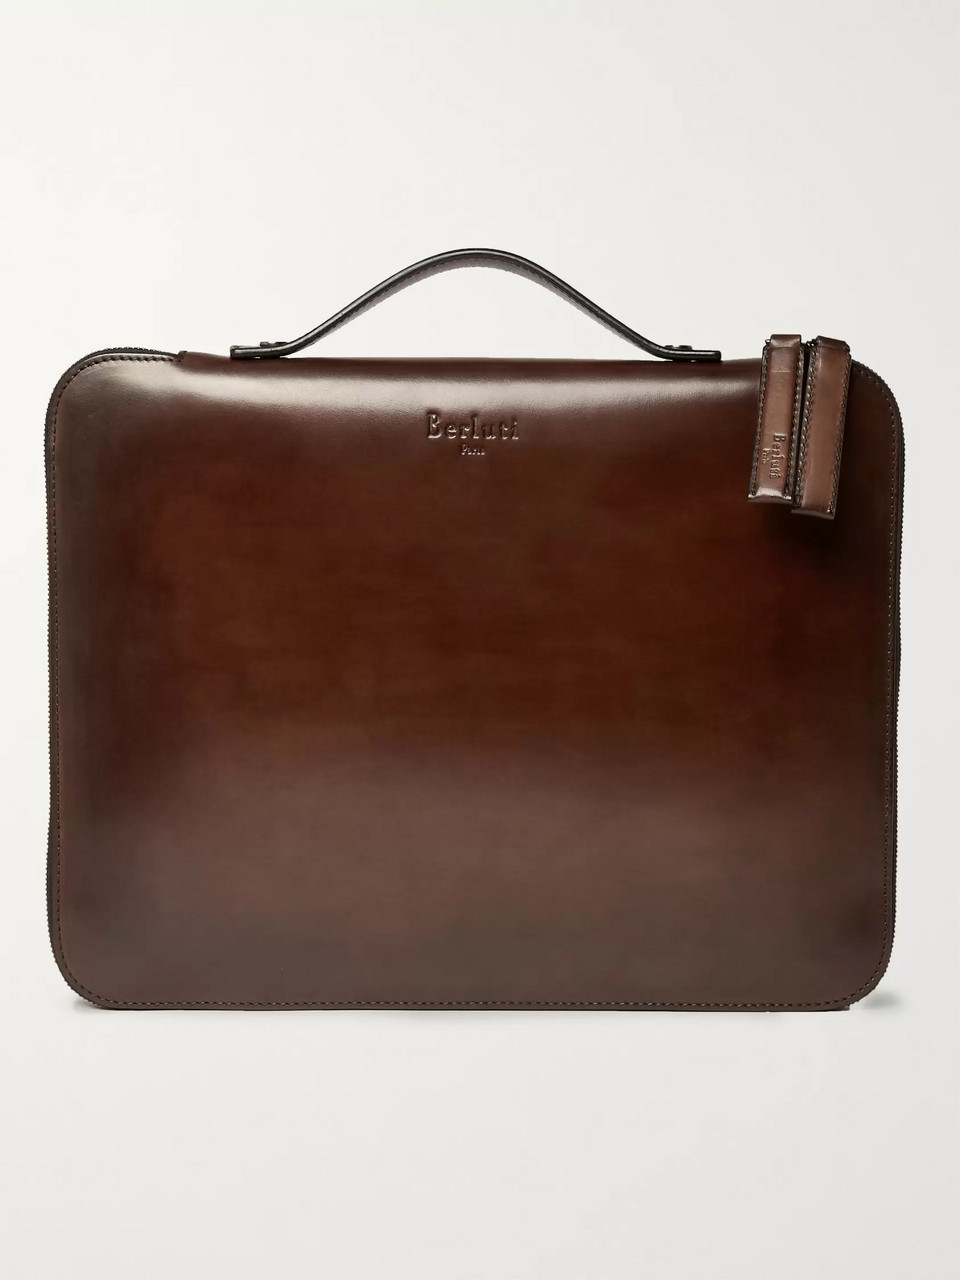 Berluti Nino Leather Briefcase